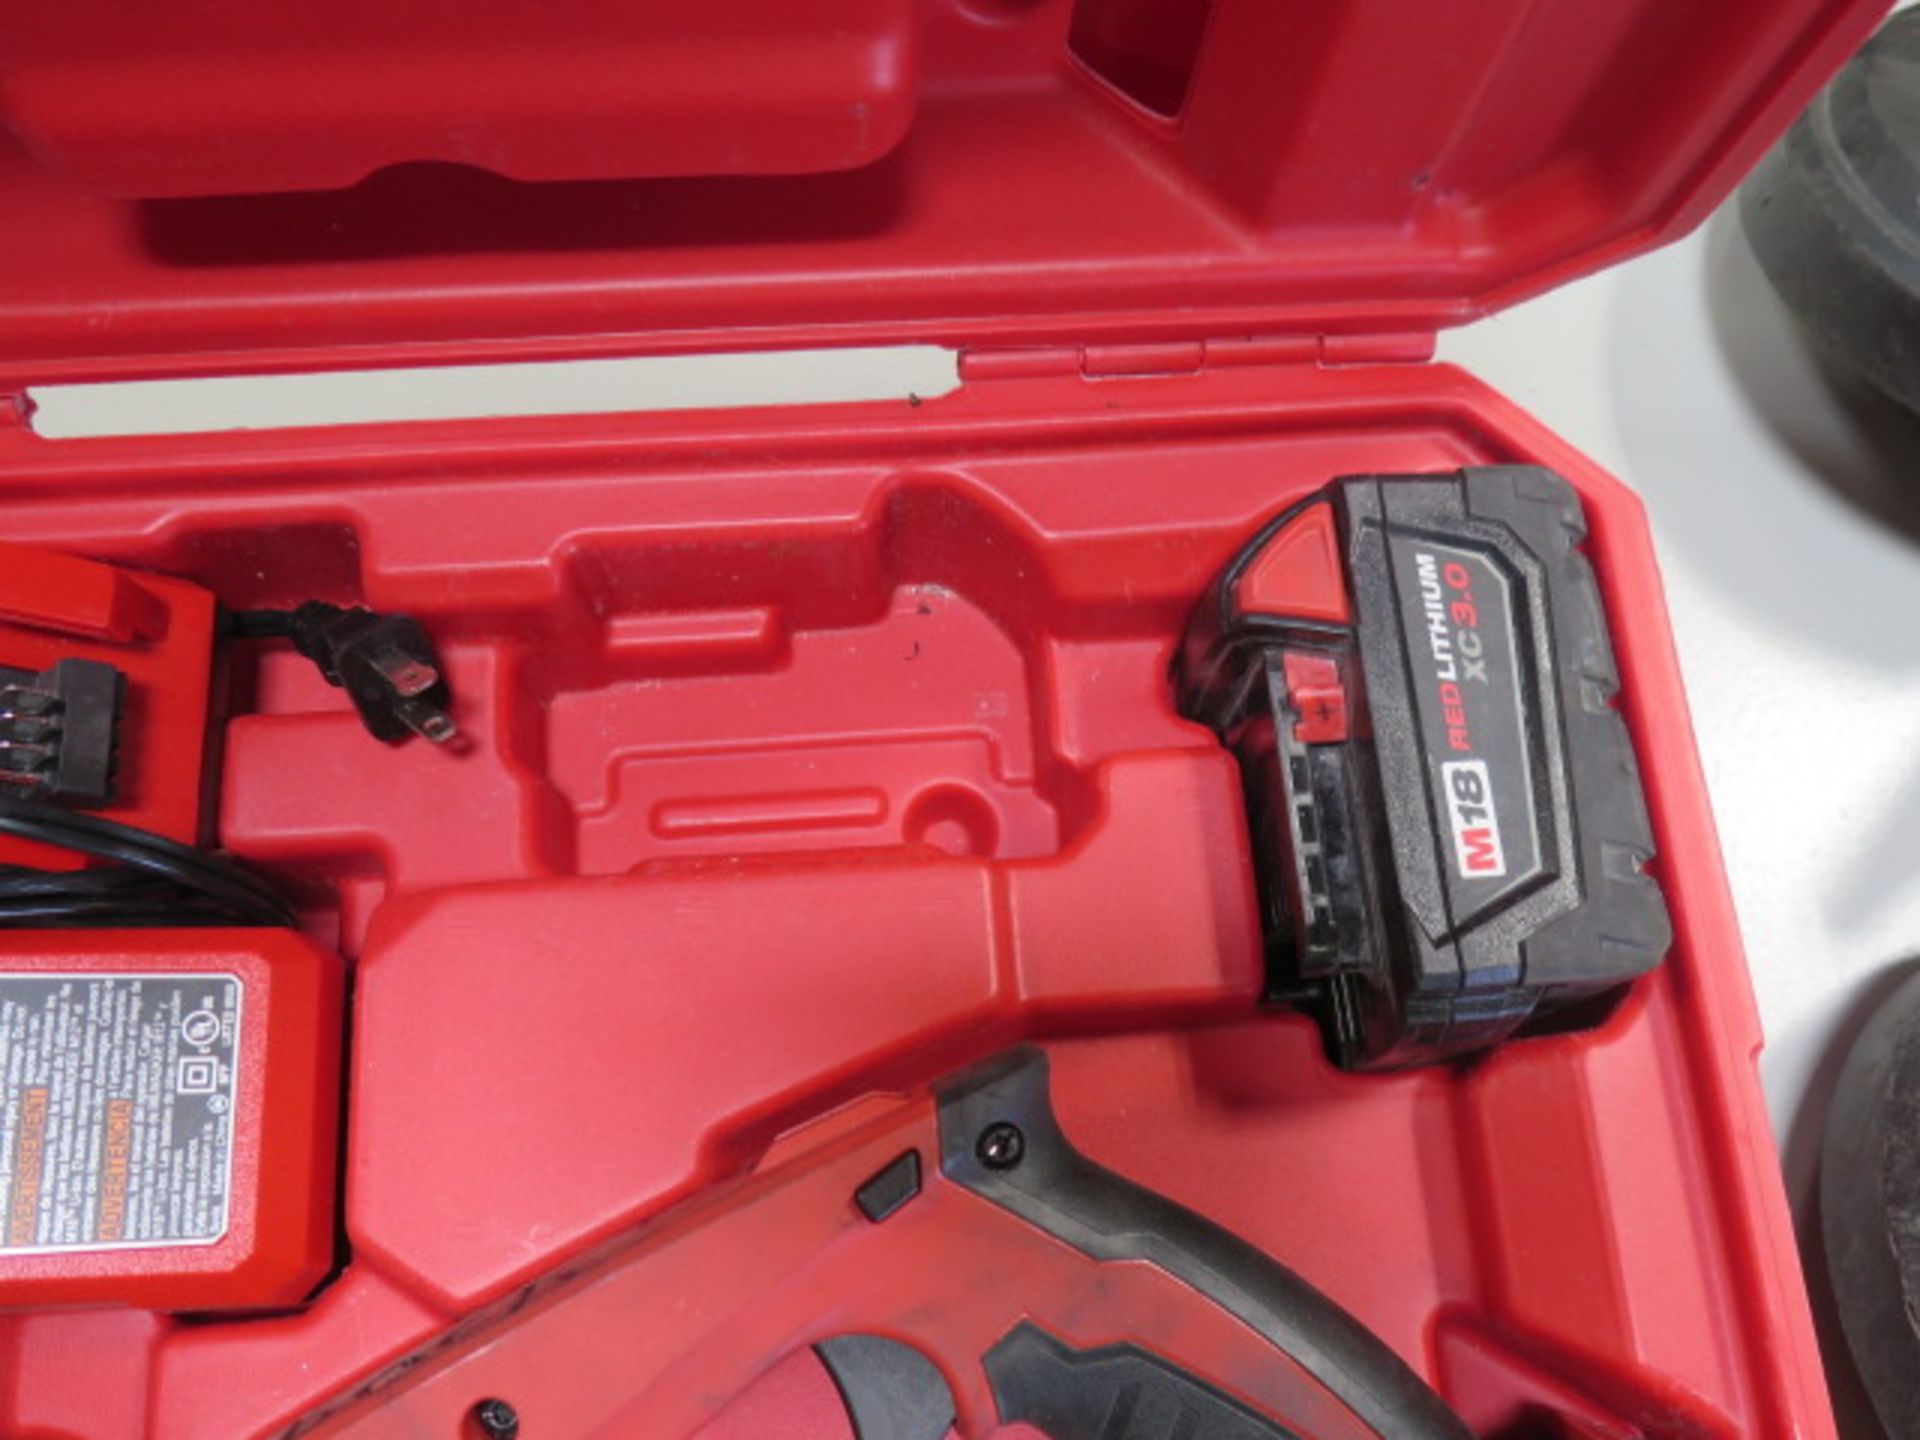 Milwaukee 18 Volt Compact Portable Band Saw Sets (2) (SOLD AS-IS - NO WARRANTY) - Image 9 of 10